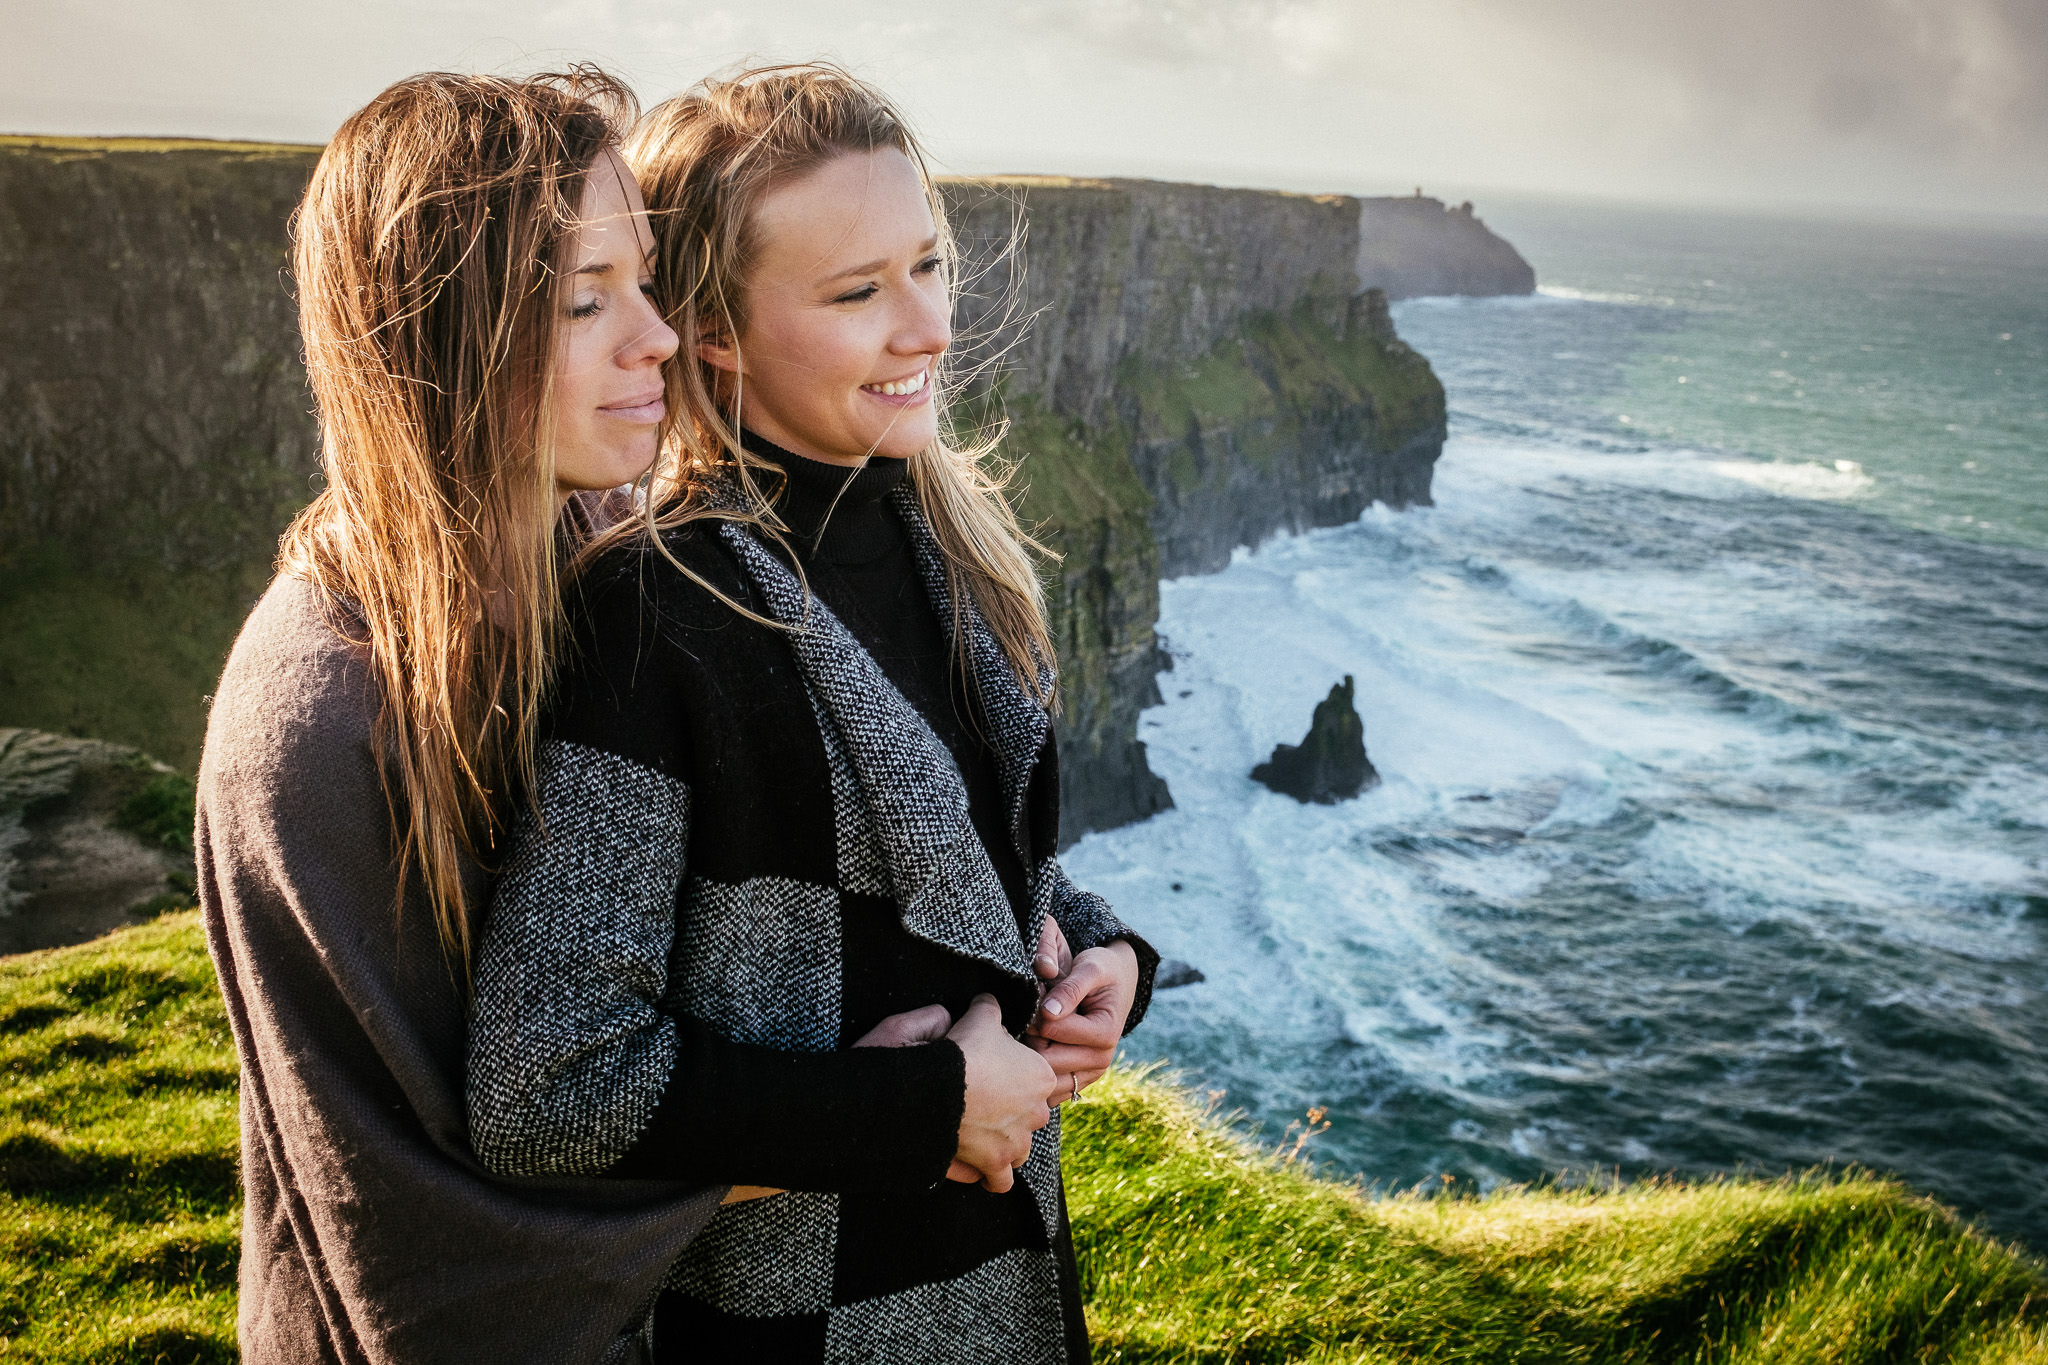 LGBT couple embracing on the cliffs of moher